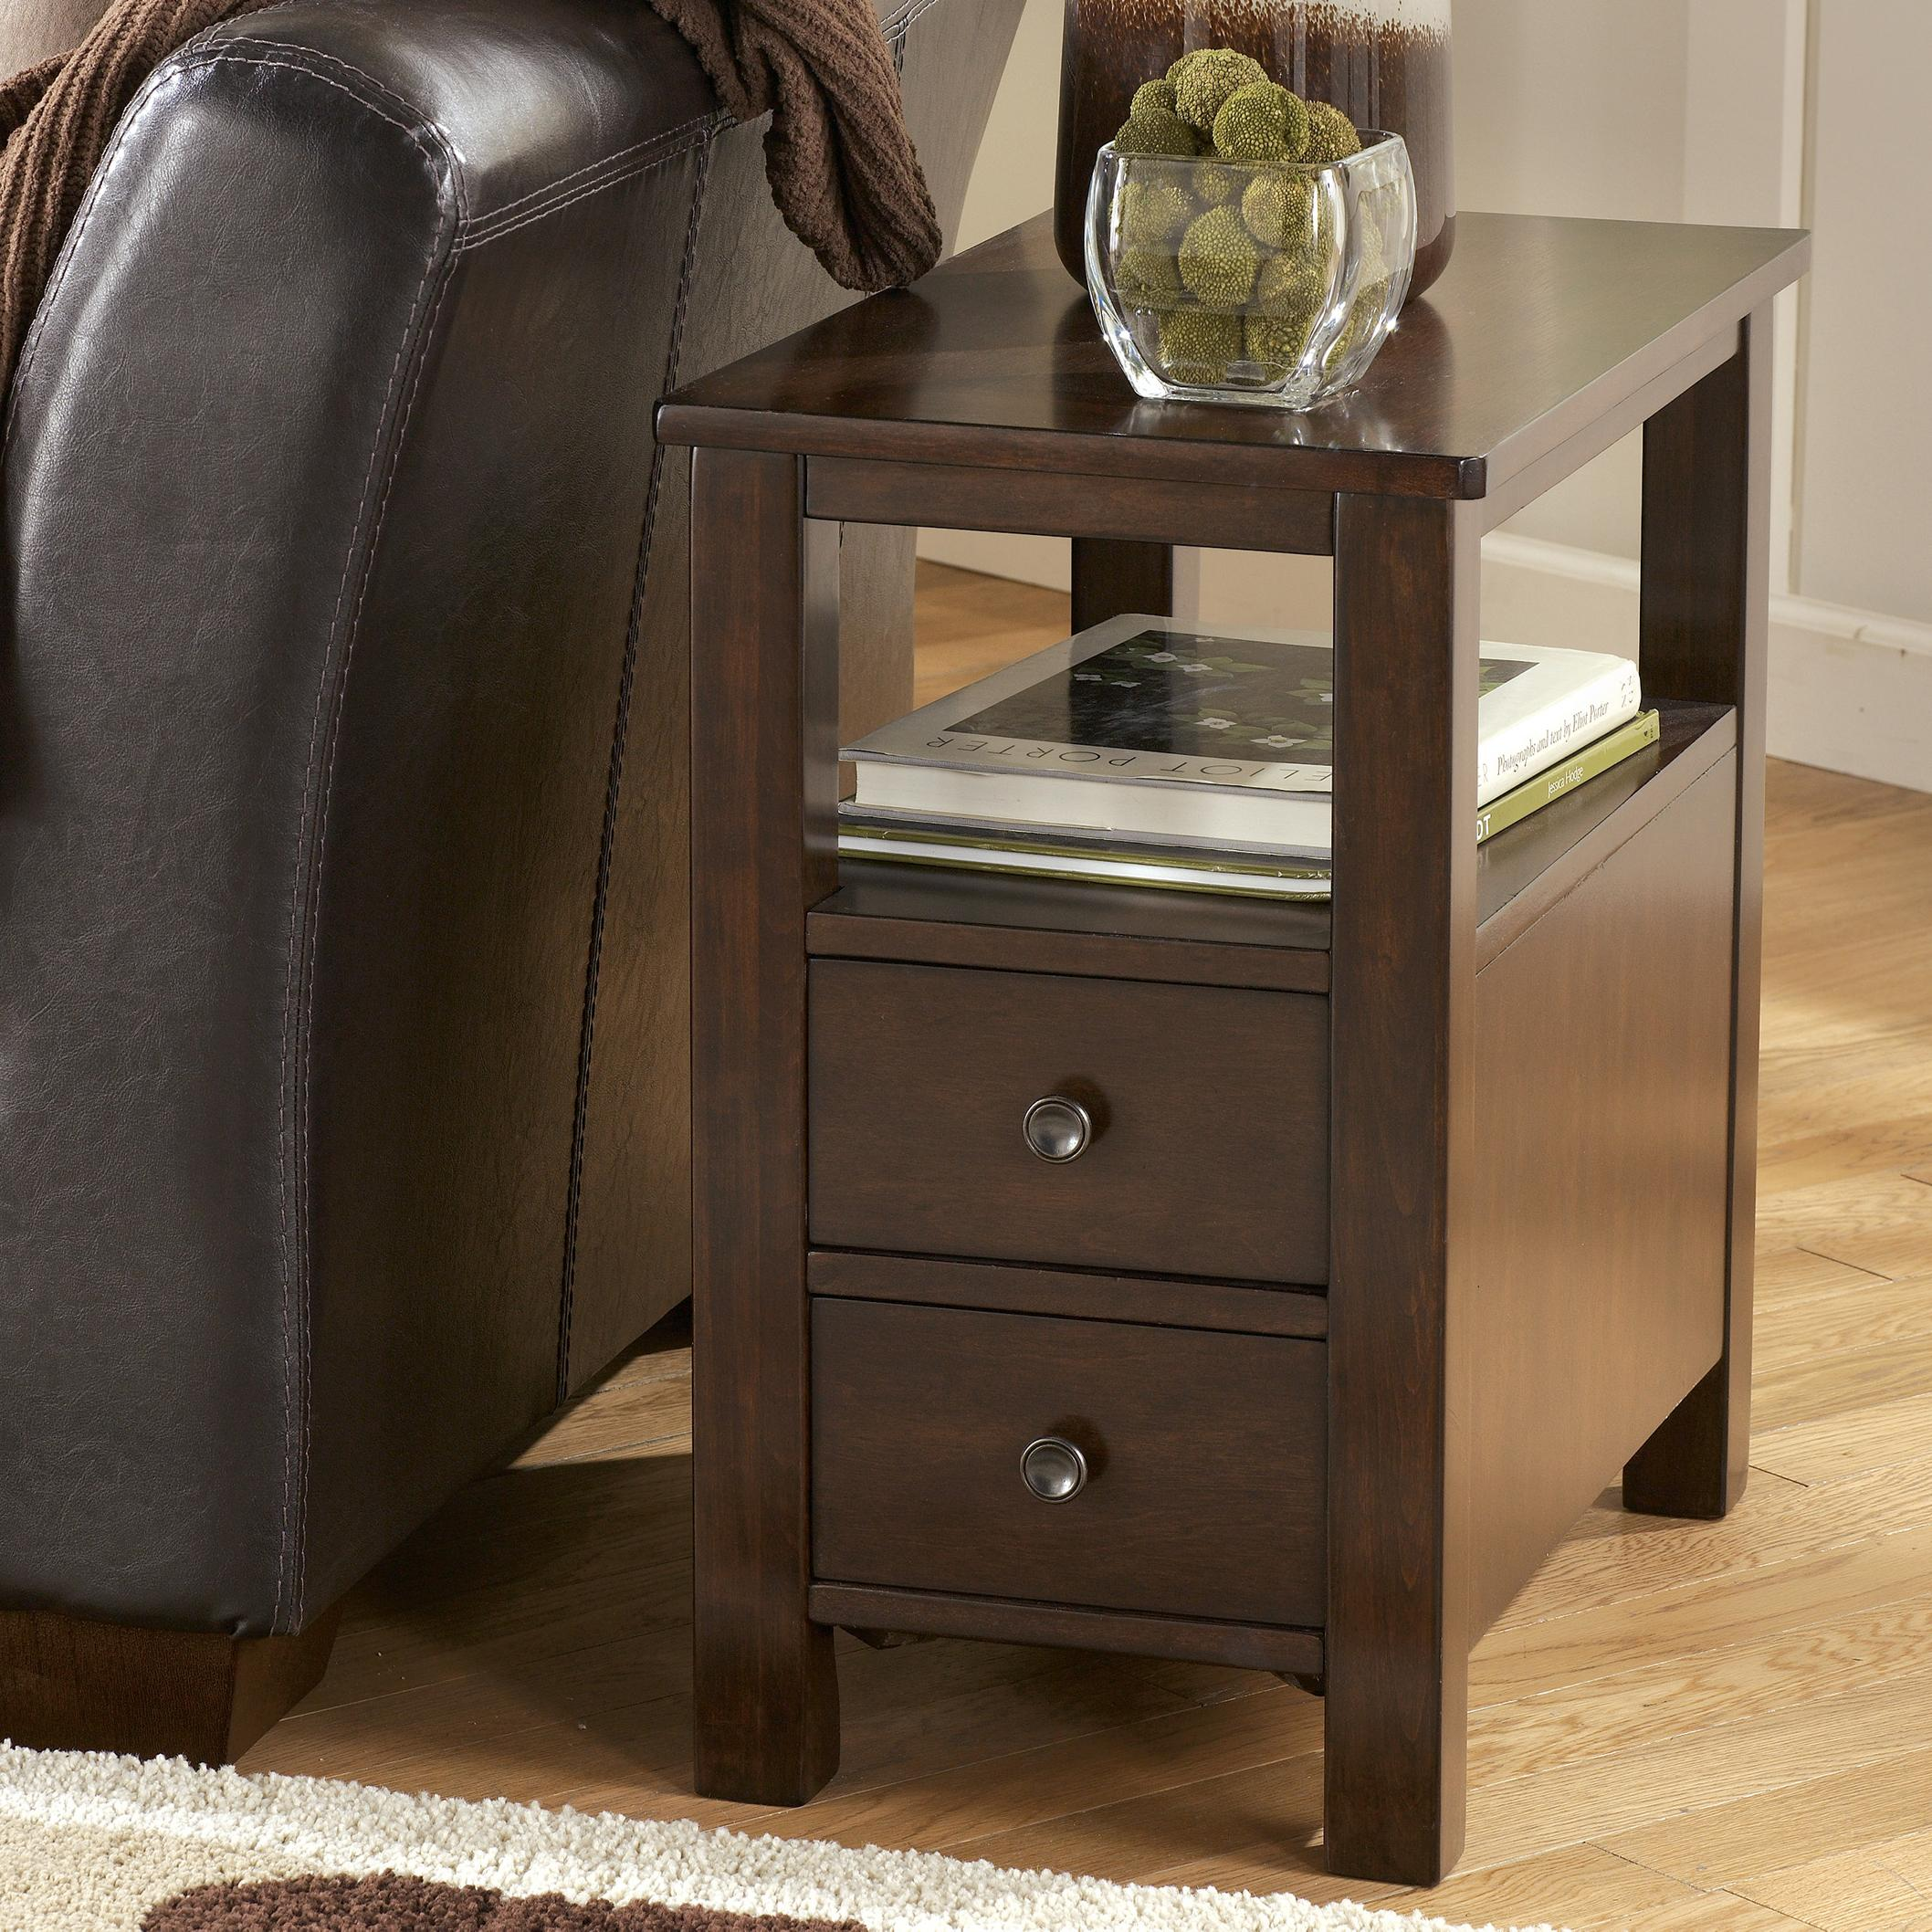 Marion Chairside Cabinet Table by Signature Design by Ashley at Beck's Furniture